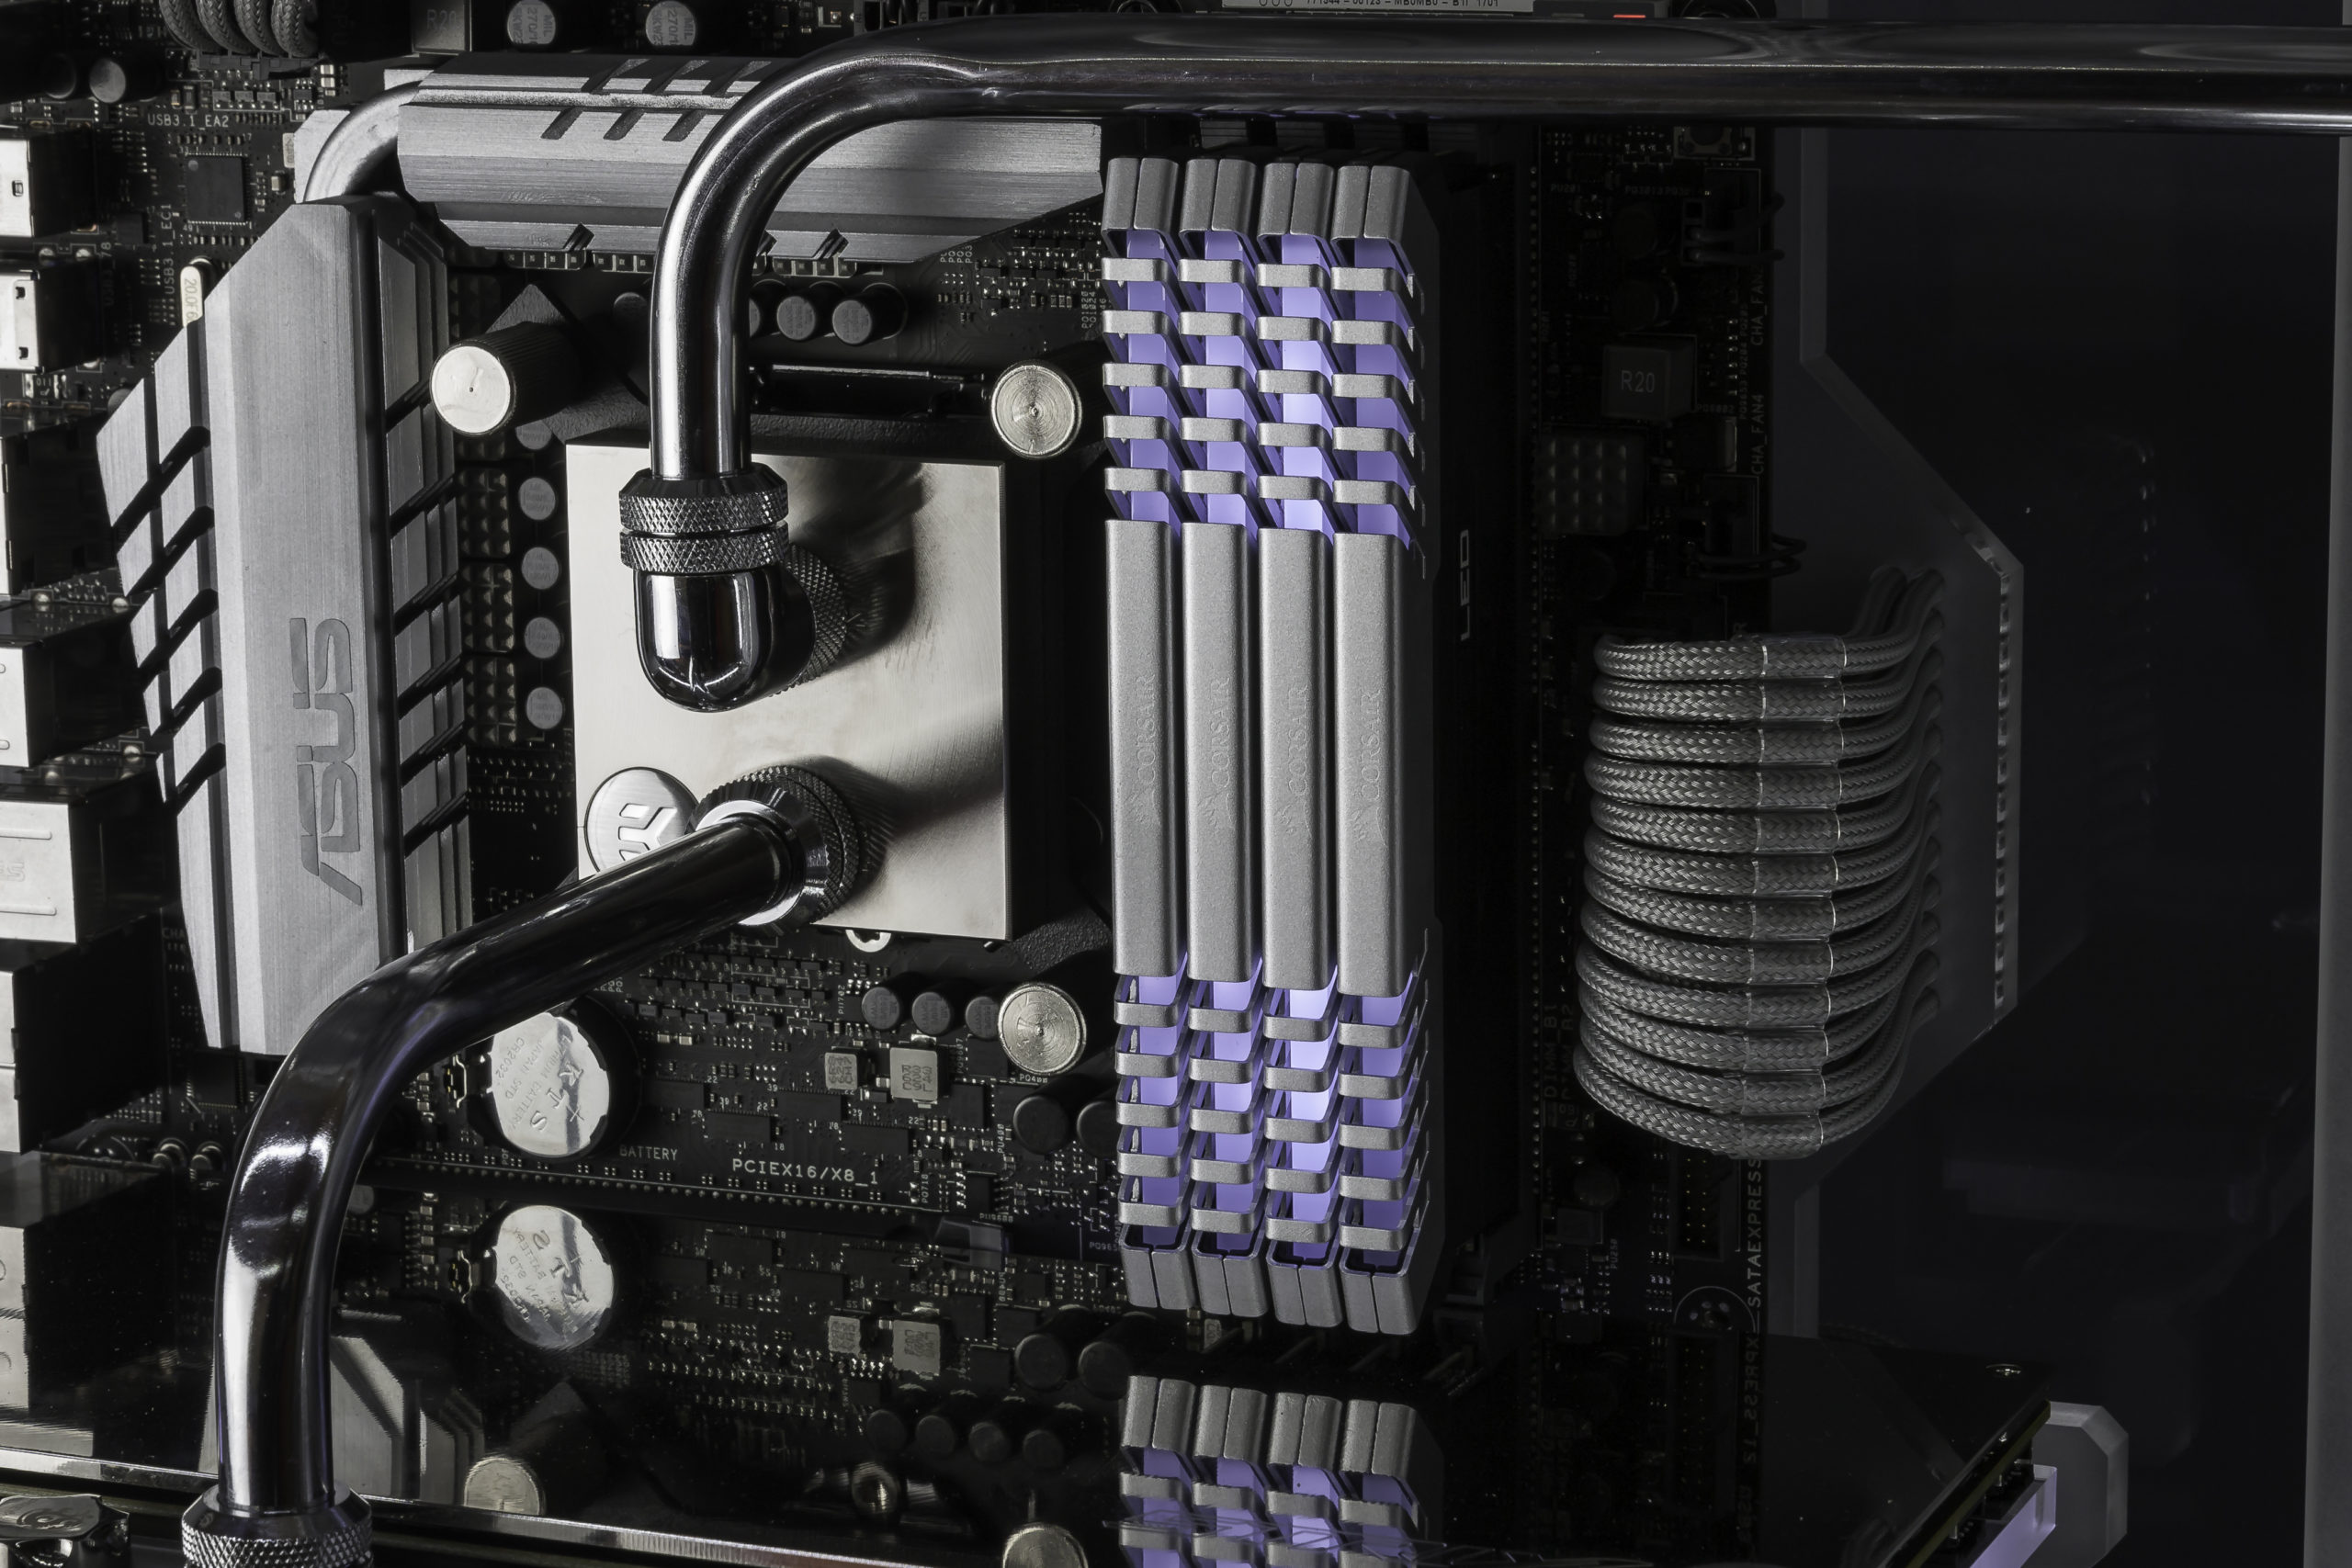 Twistermod_Corsair_ROG_570x_Crystalized_34